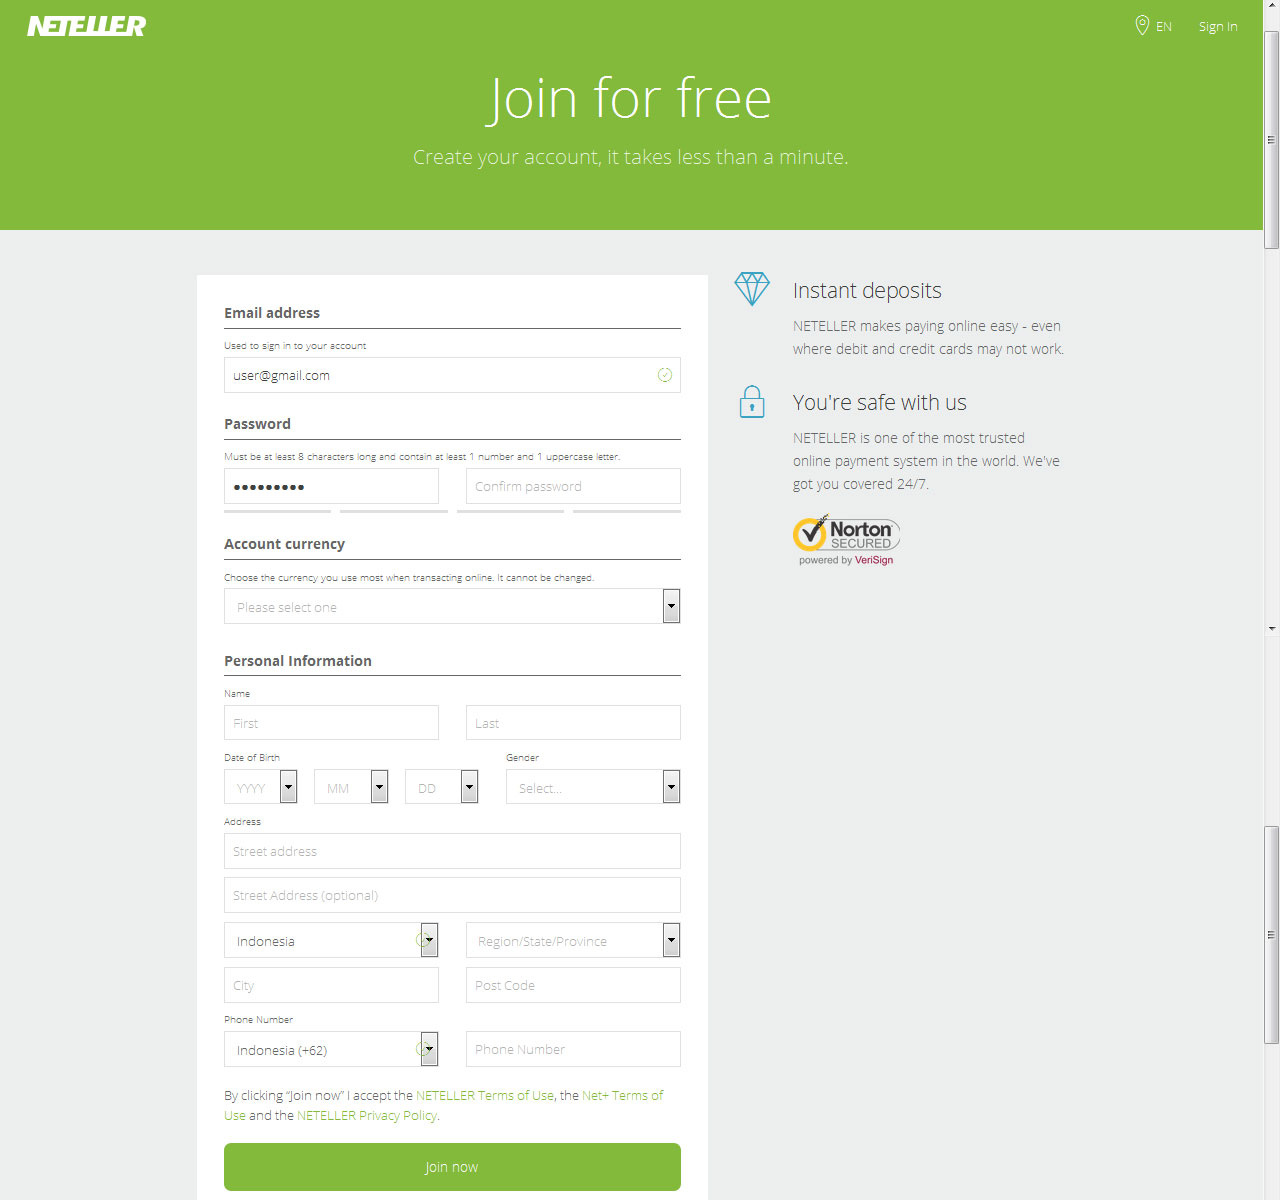 neteller-sign-up-form